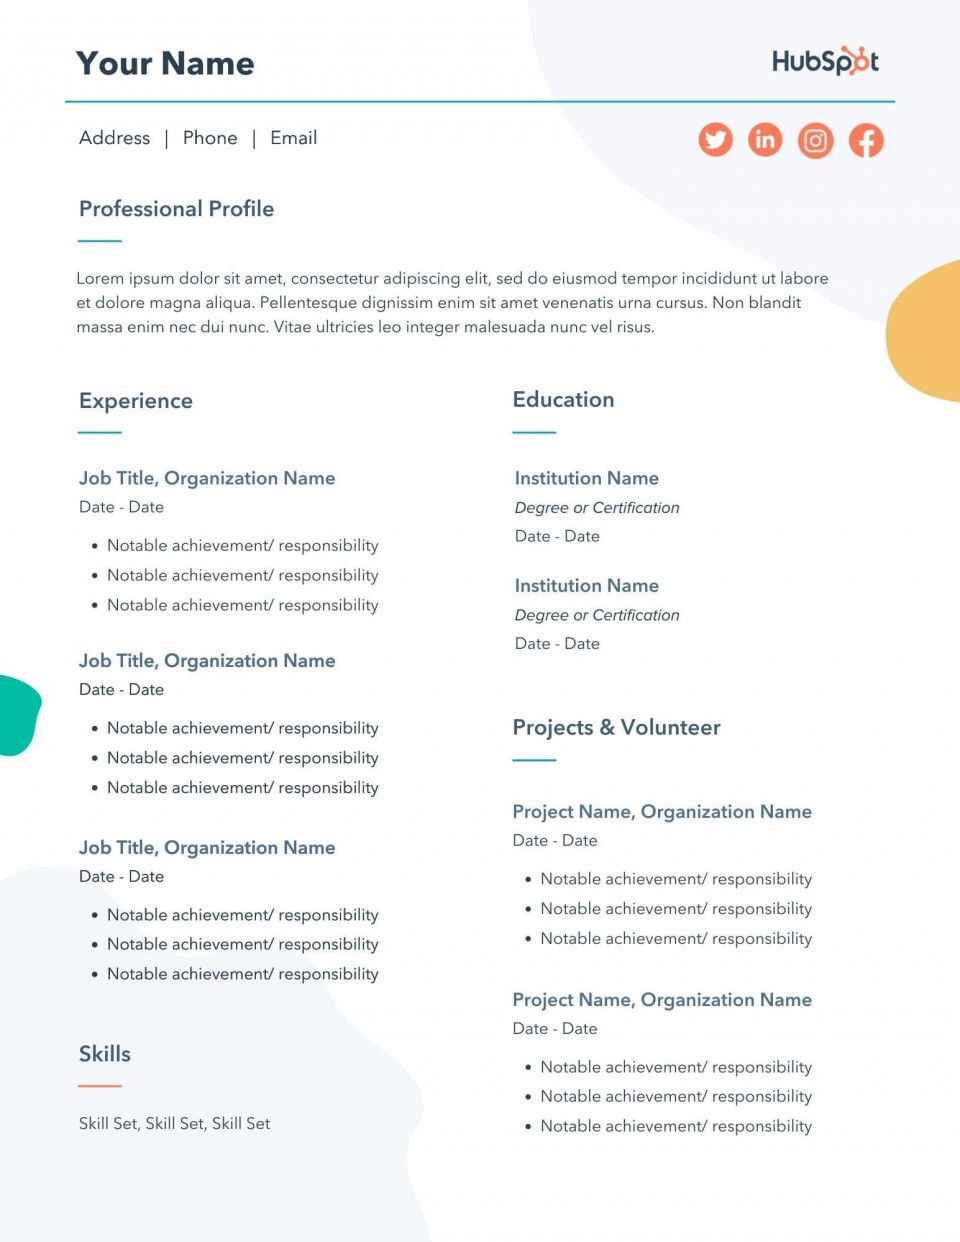 004 Top Resume Template For First Job Image  Student Australia In High School Teenager960